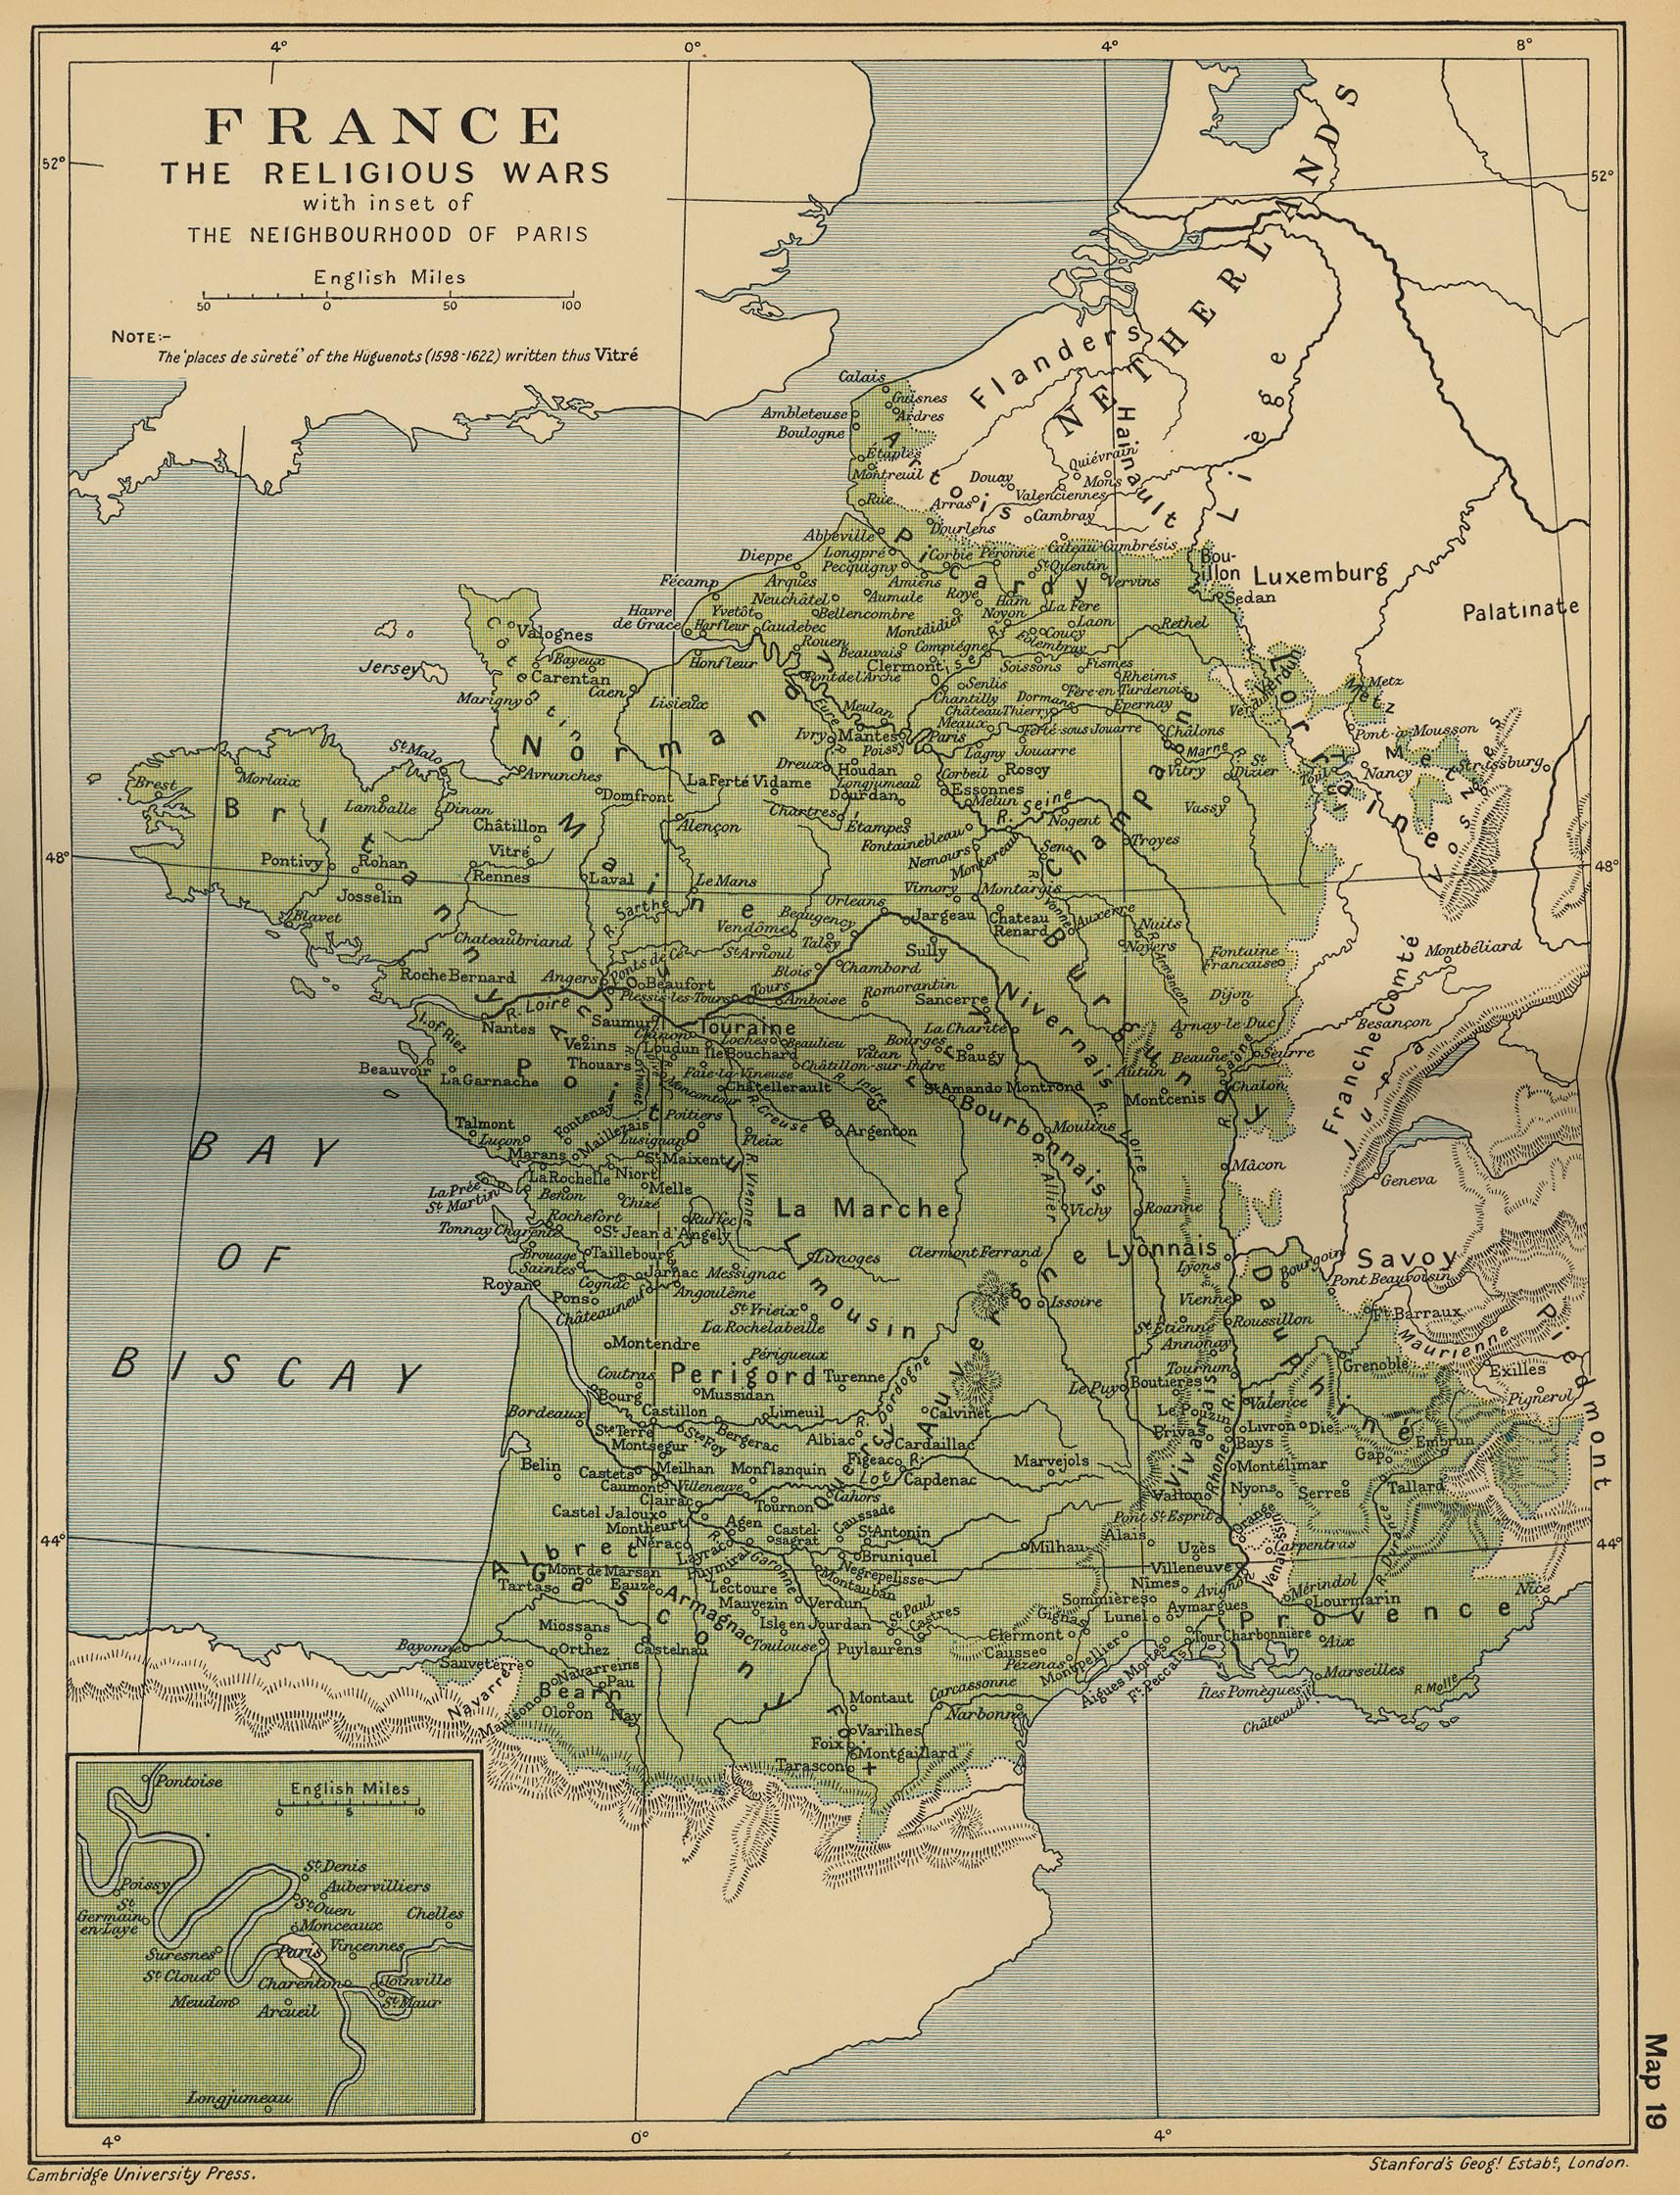 Map of France: The Religious Wars 1562-1598